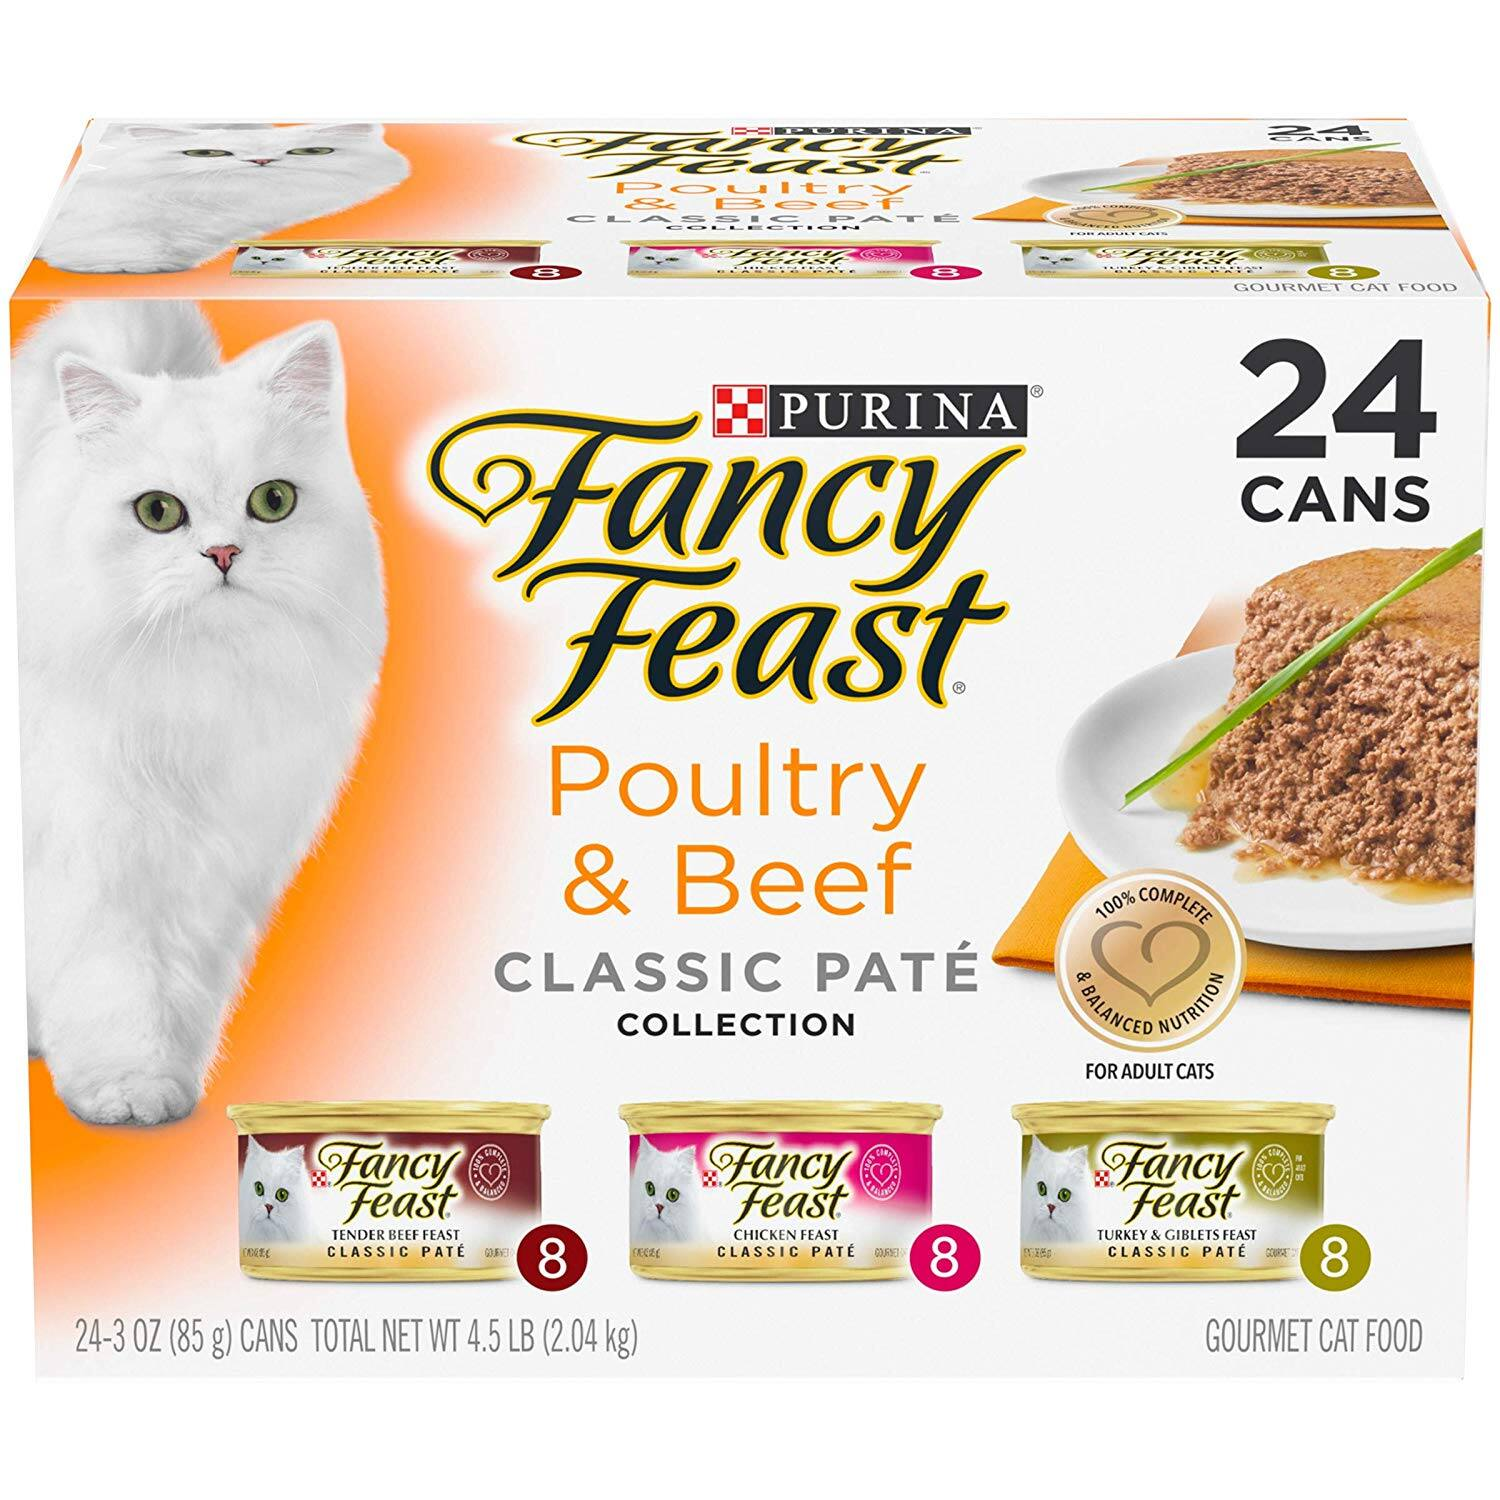 Purina Fancy Feast Wet Cat Food Variety Pack, Chicken Feast Collection - (24) 3 oz. Cans $12.89